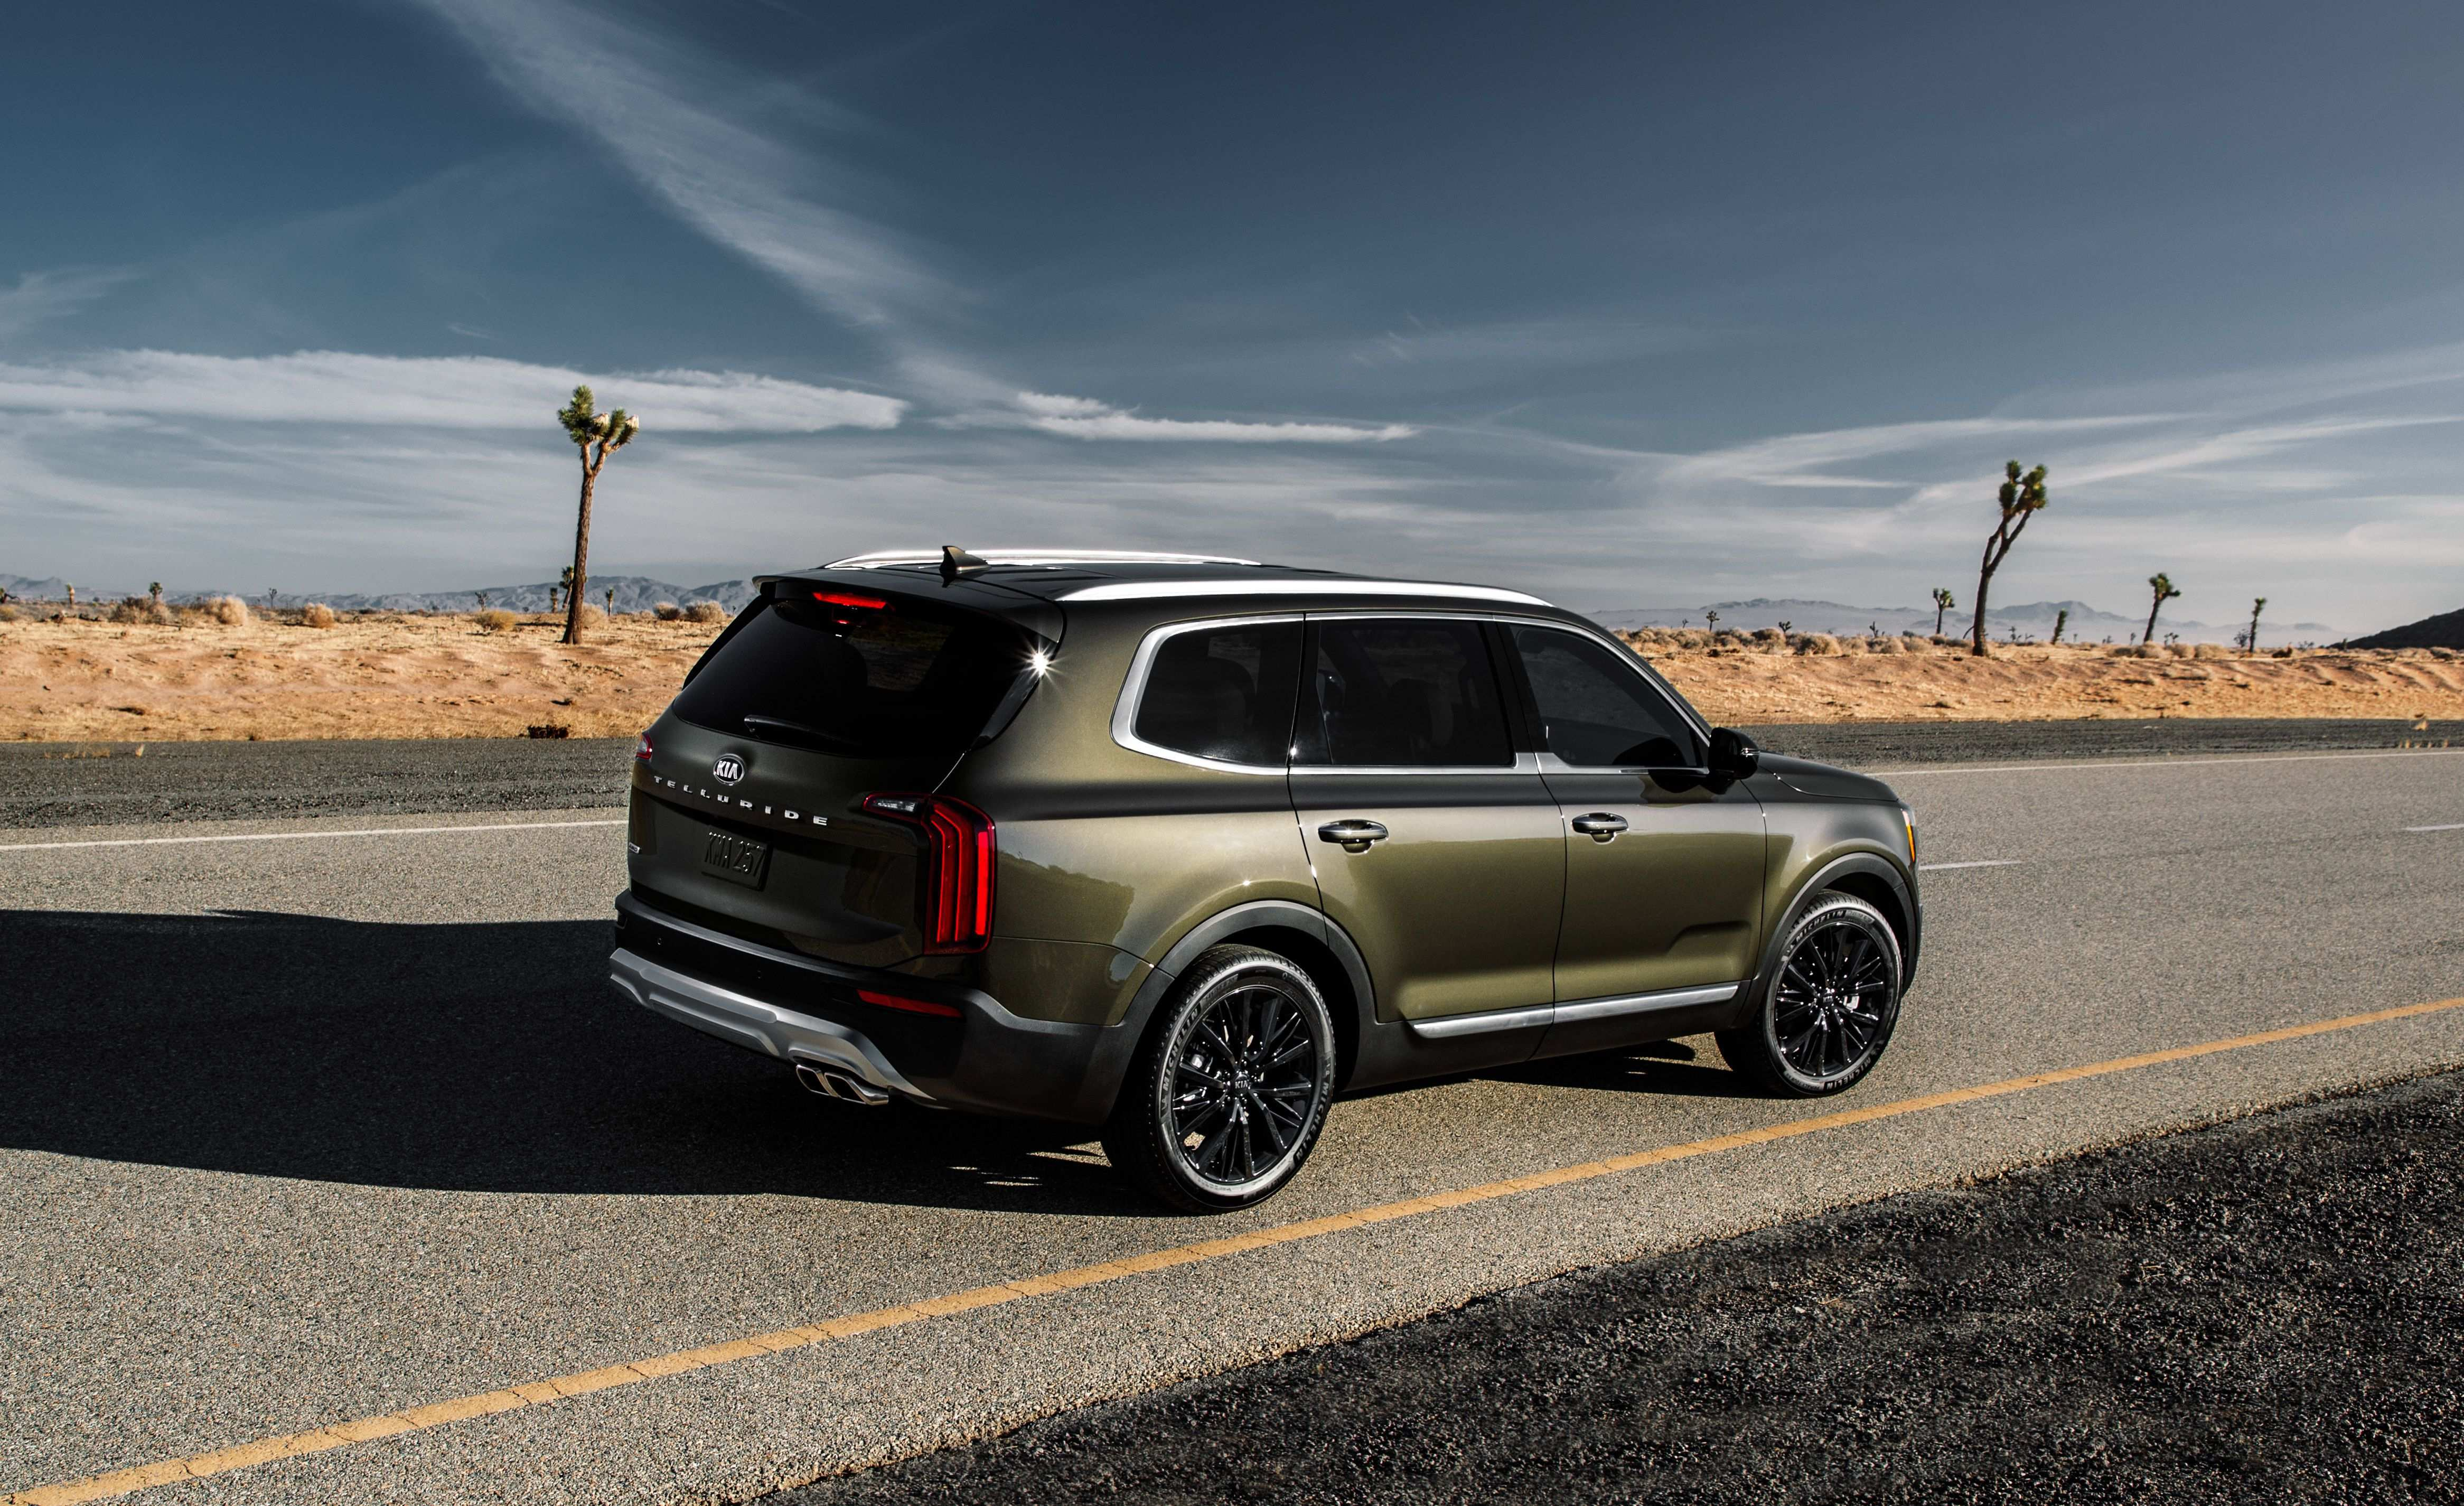 14 Great Kia 2020 Telluride New Concept by Kia 2020 Telluride